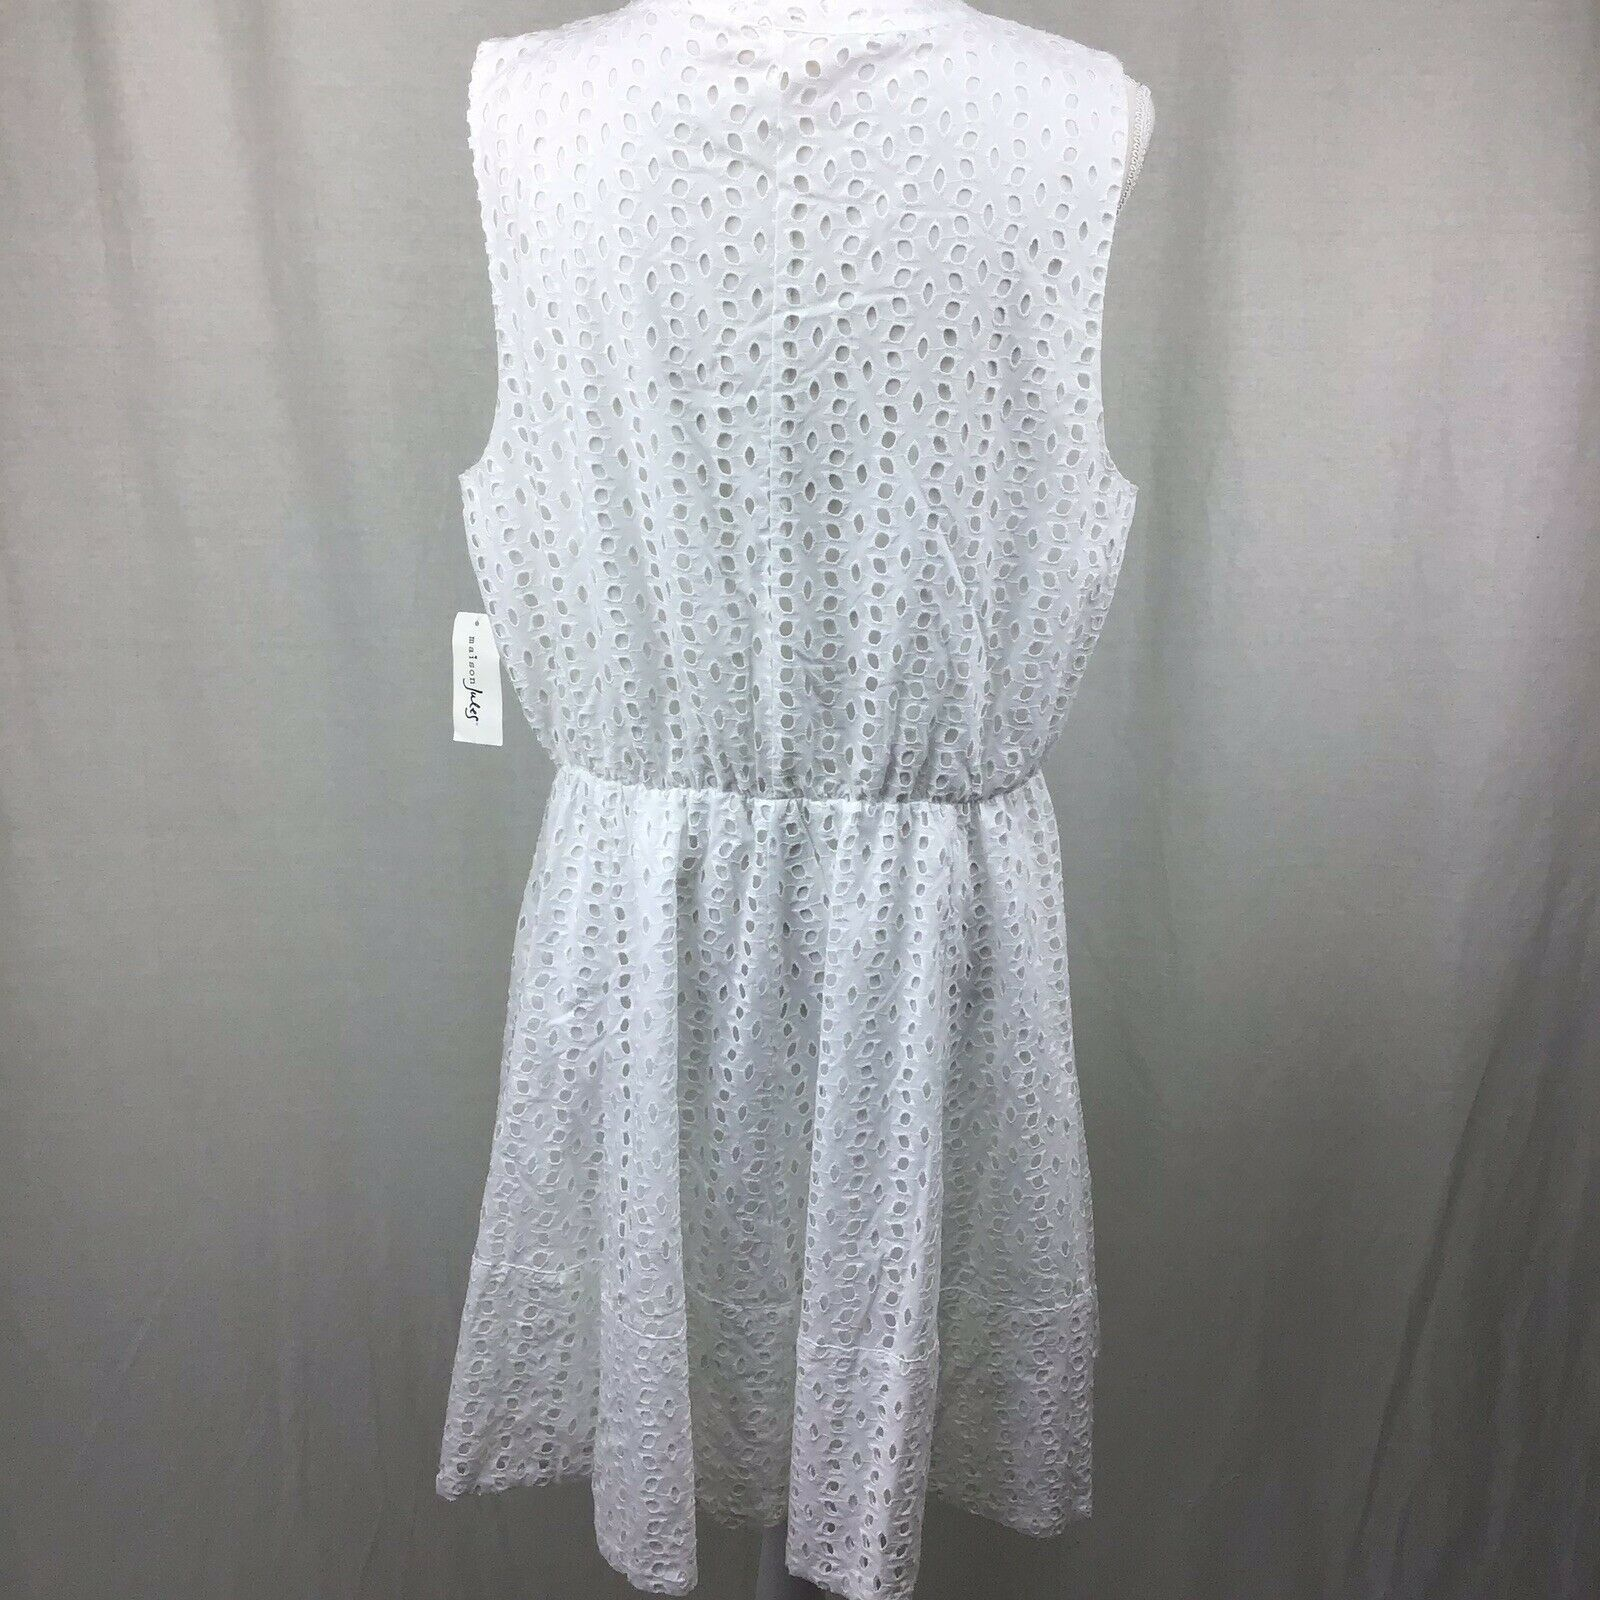 abb72ee839 ... Maison Jules Women Eyelet Fit Flare Flare Flare Dress Bright White Size  XXL D0118 5681a5 ...